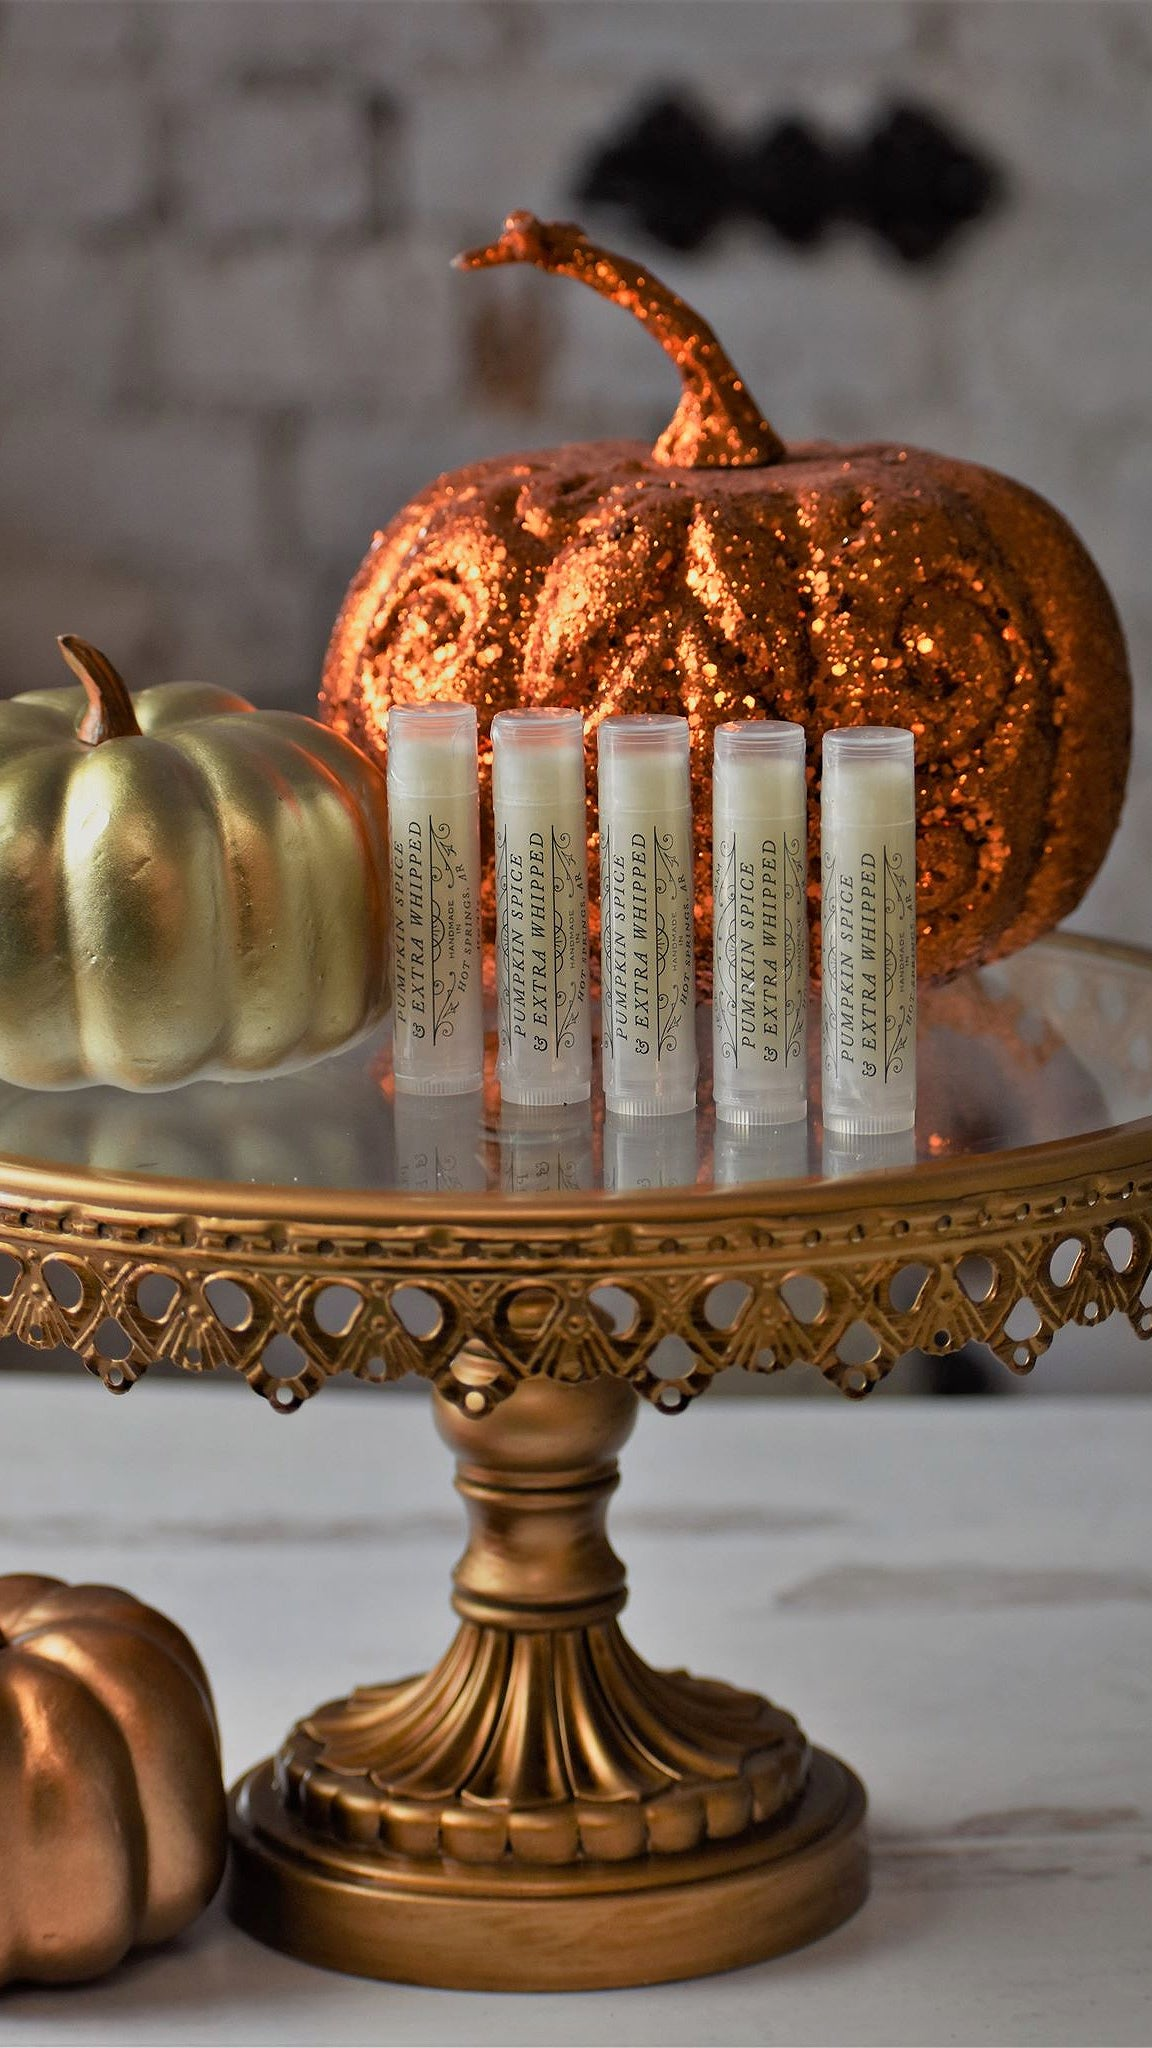 Pumpkin Spice & Extra Whipped Lip Balm